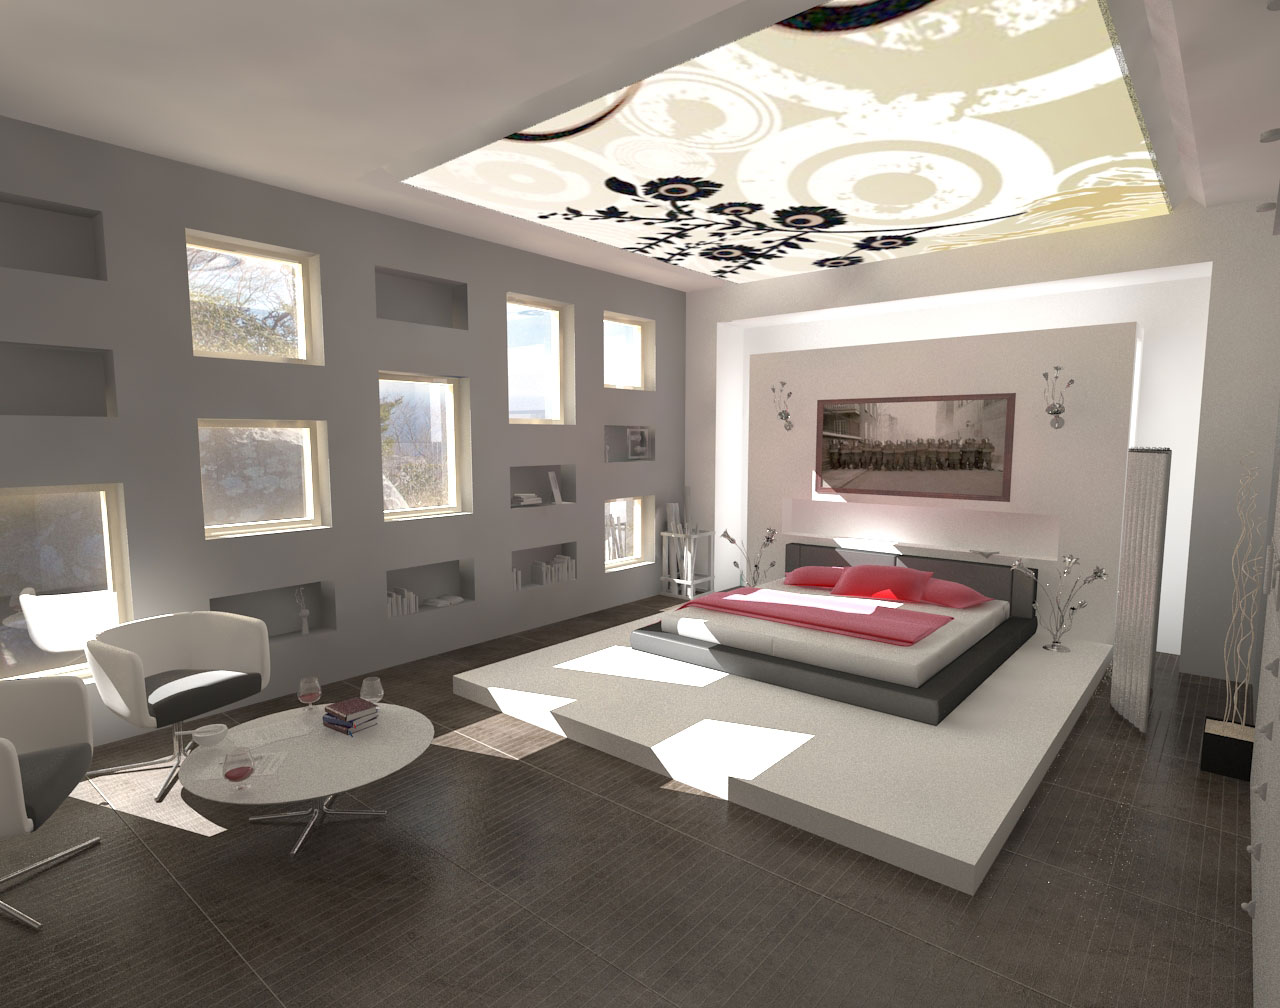 decorations minimalist design modern bedroom interior design ideas